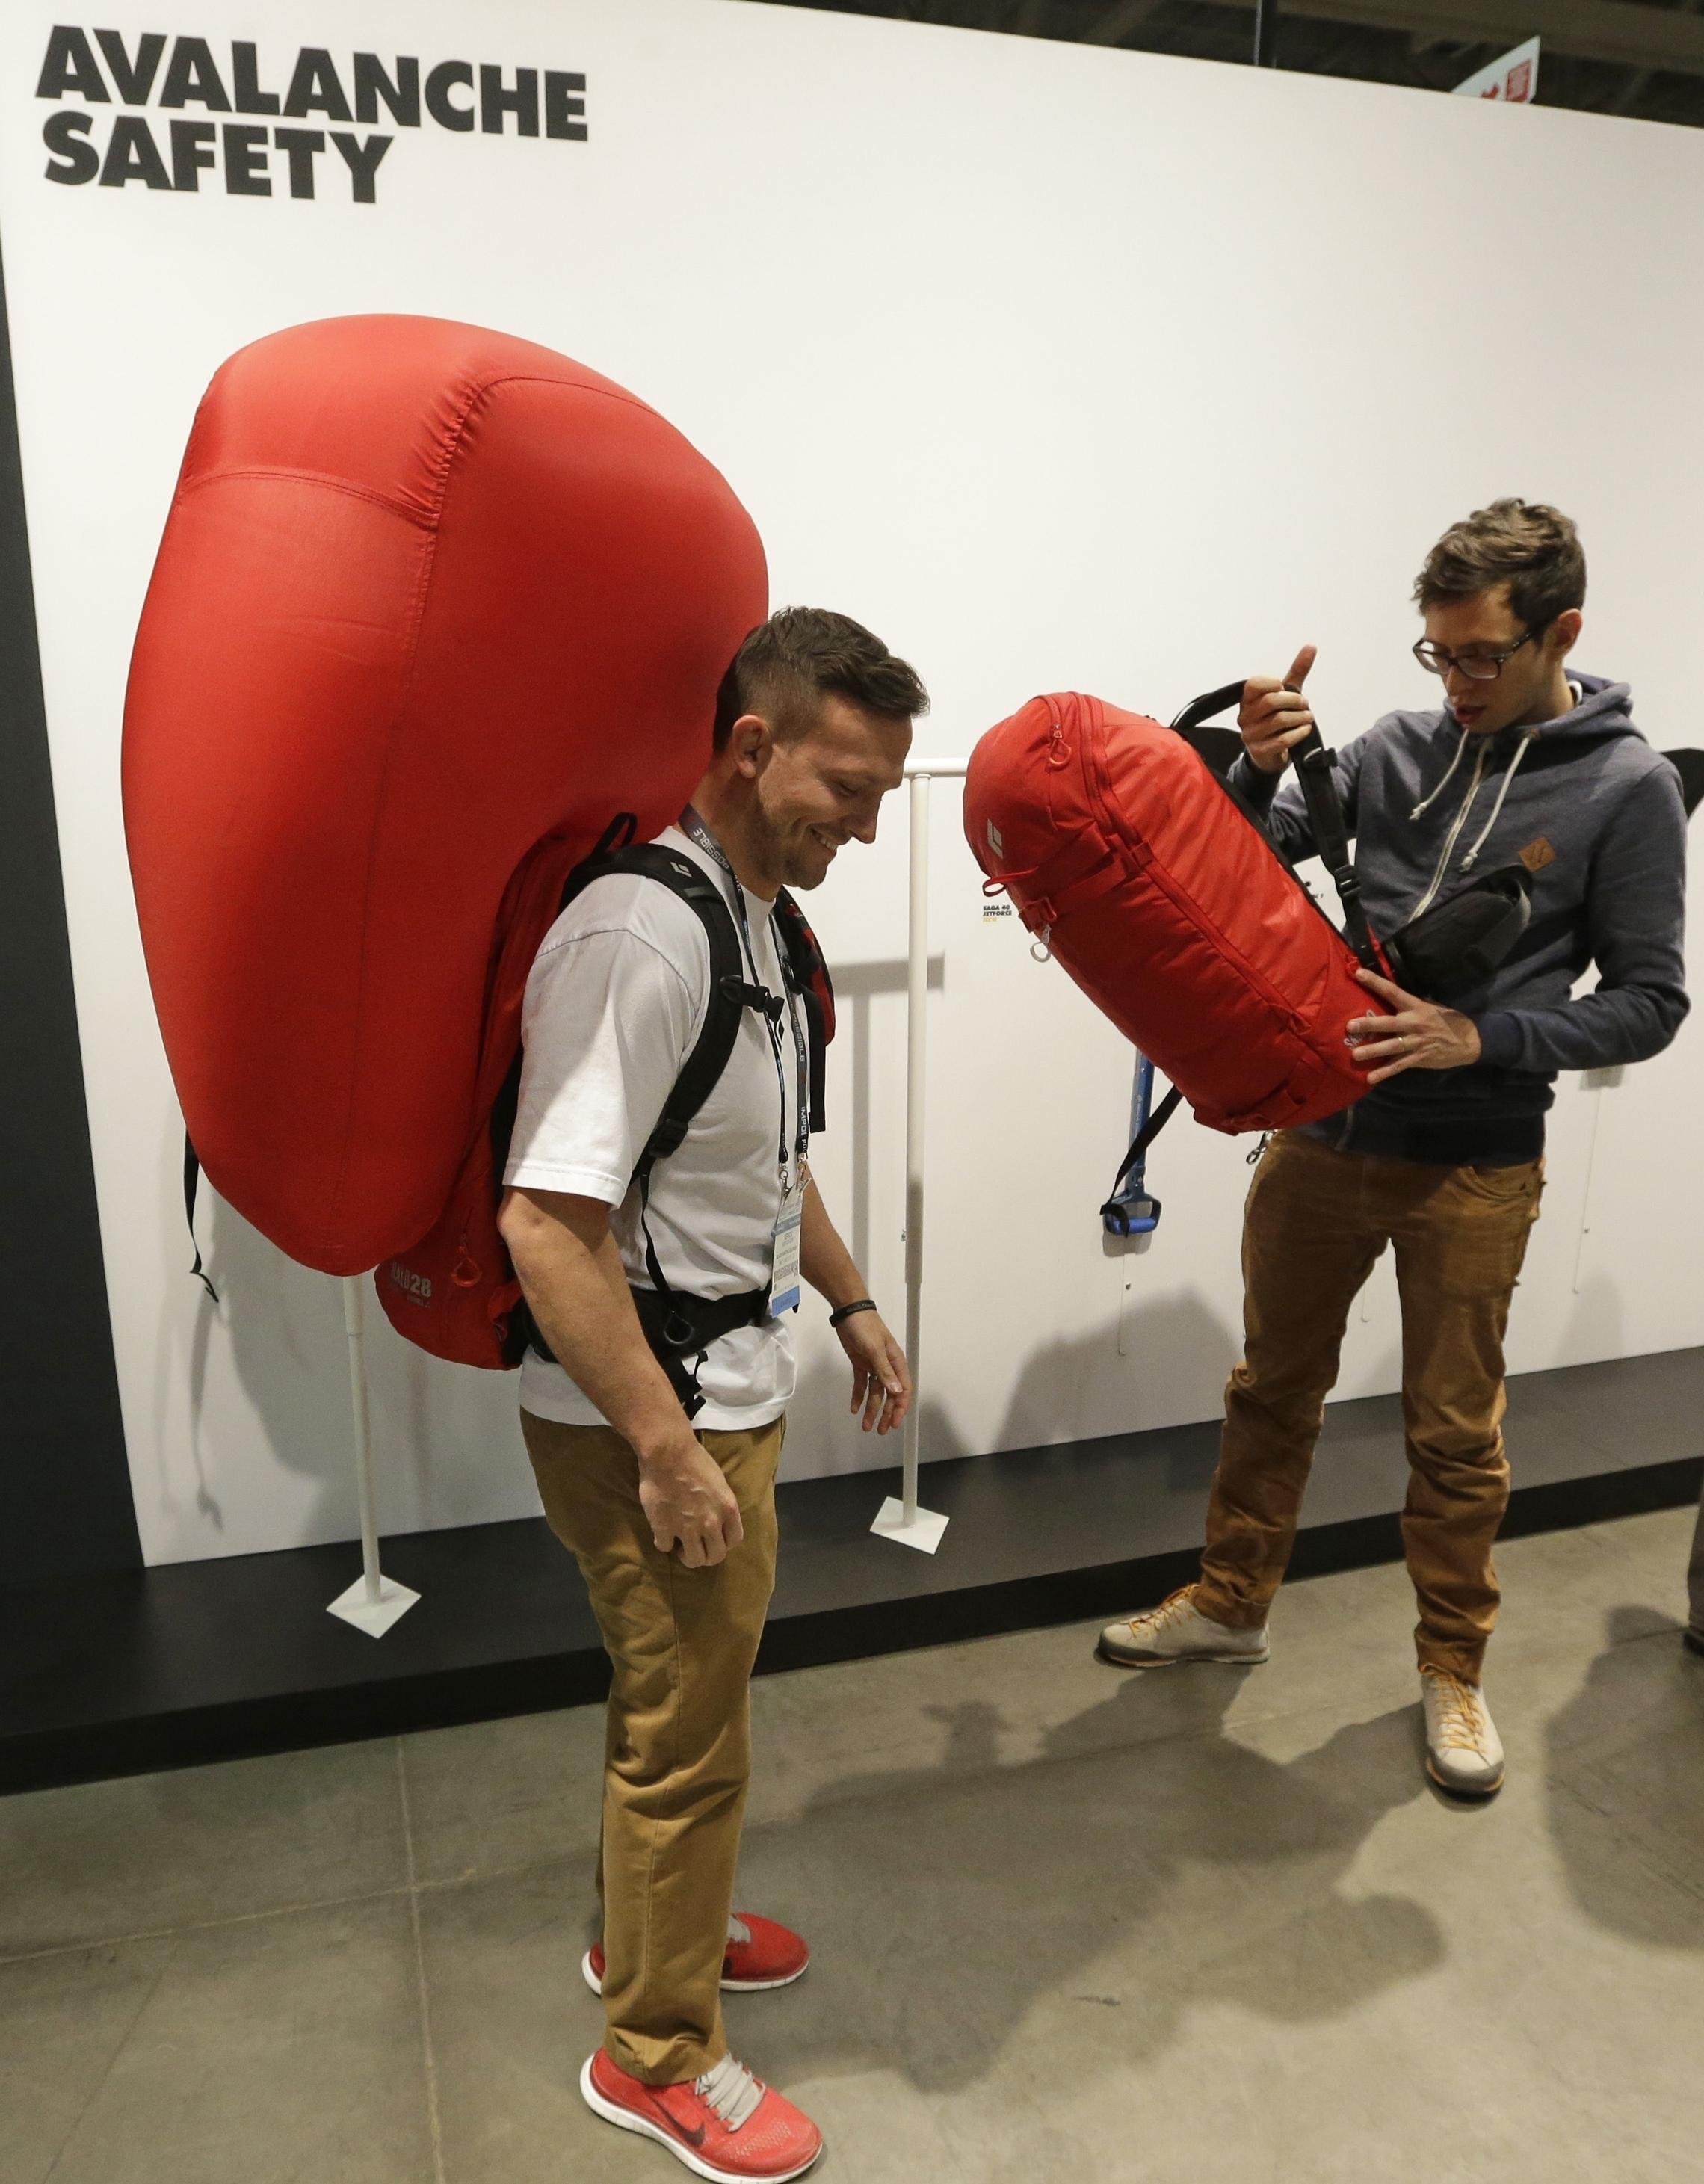 Derick Noffsinger Models A Deployed Avalanche Air Bag Pack Made By Black Diamond At An Industry Market In Salt Lake City Last Month